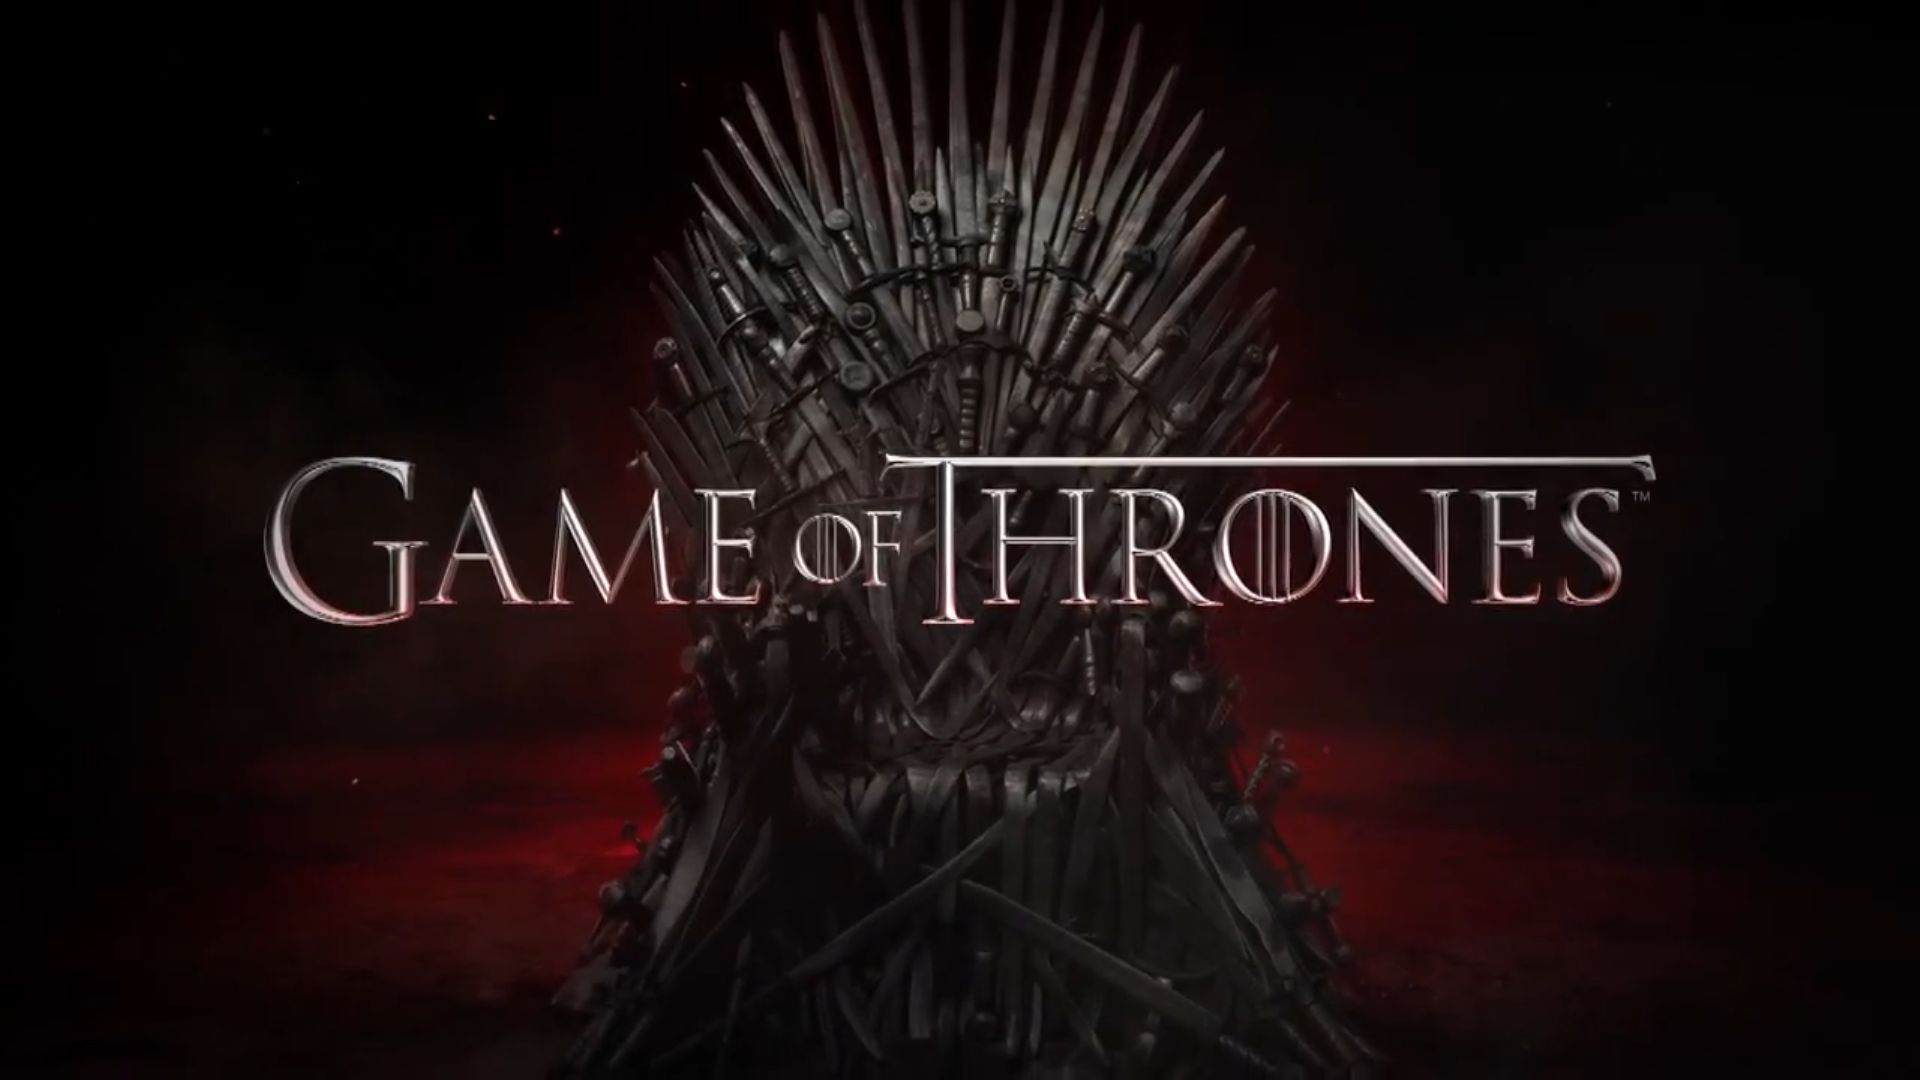 Se acerca el final de Game of Thrones con 2 temporadas más cortas